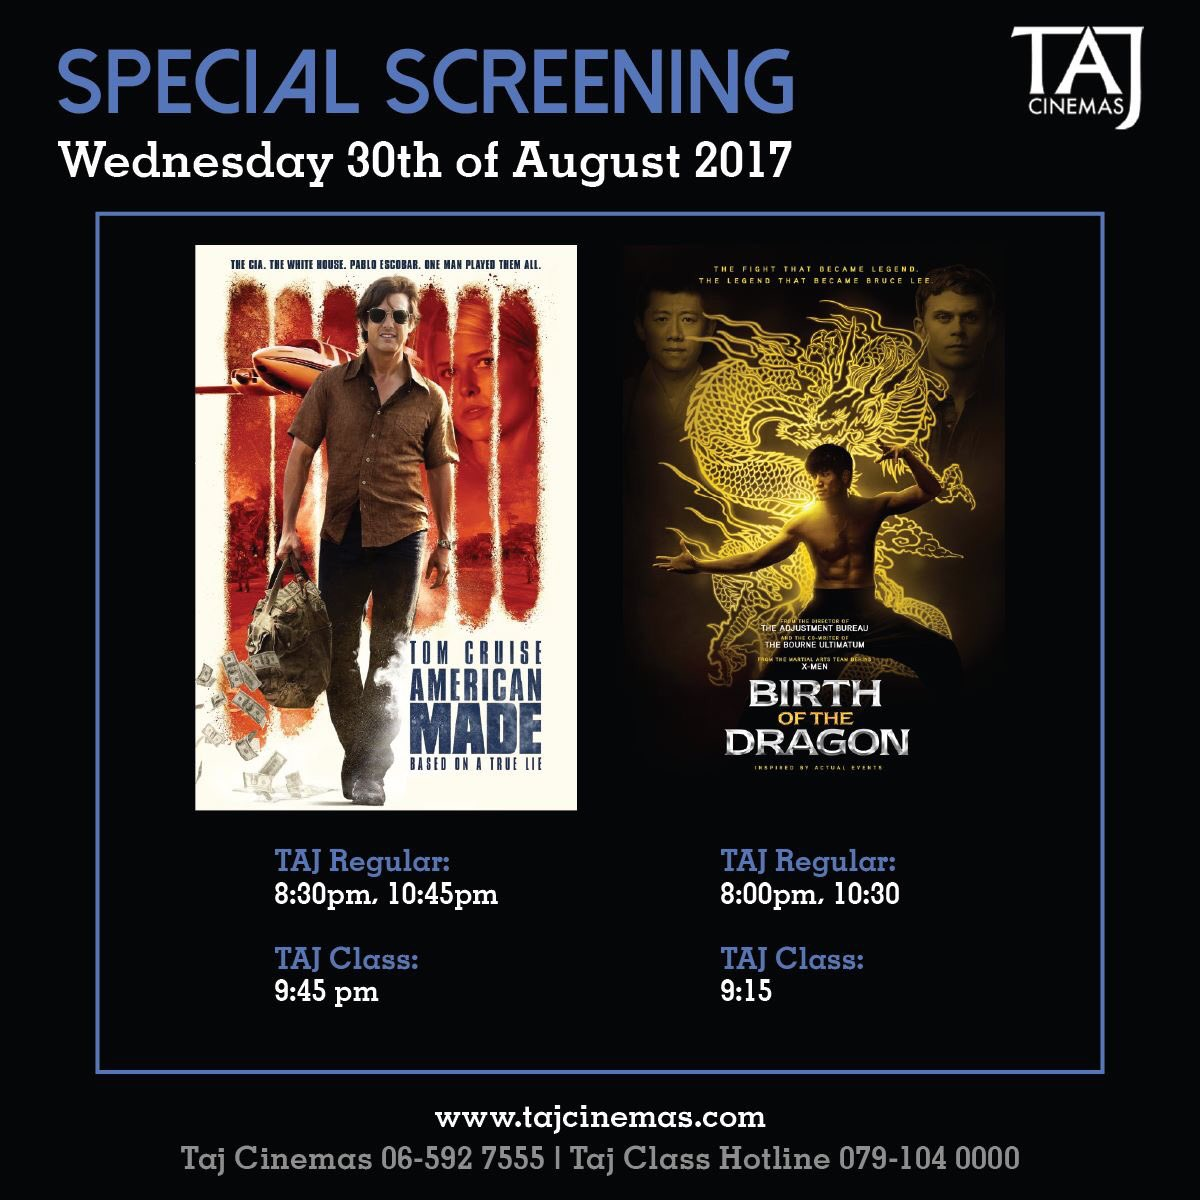 Do not miss out on our special screenings today! Be the first to watch these movies and double your loyalty cards points. #TAJCinemas #Jo https://t.co/KnbXja9laQ